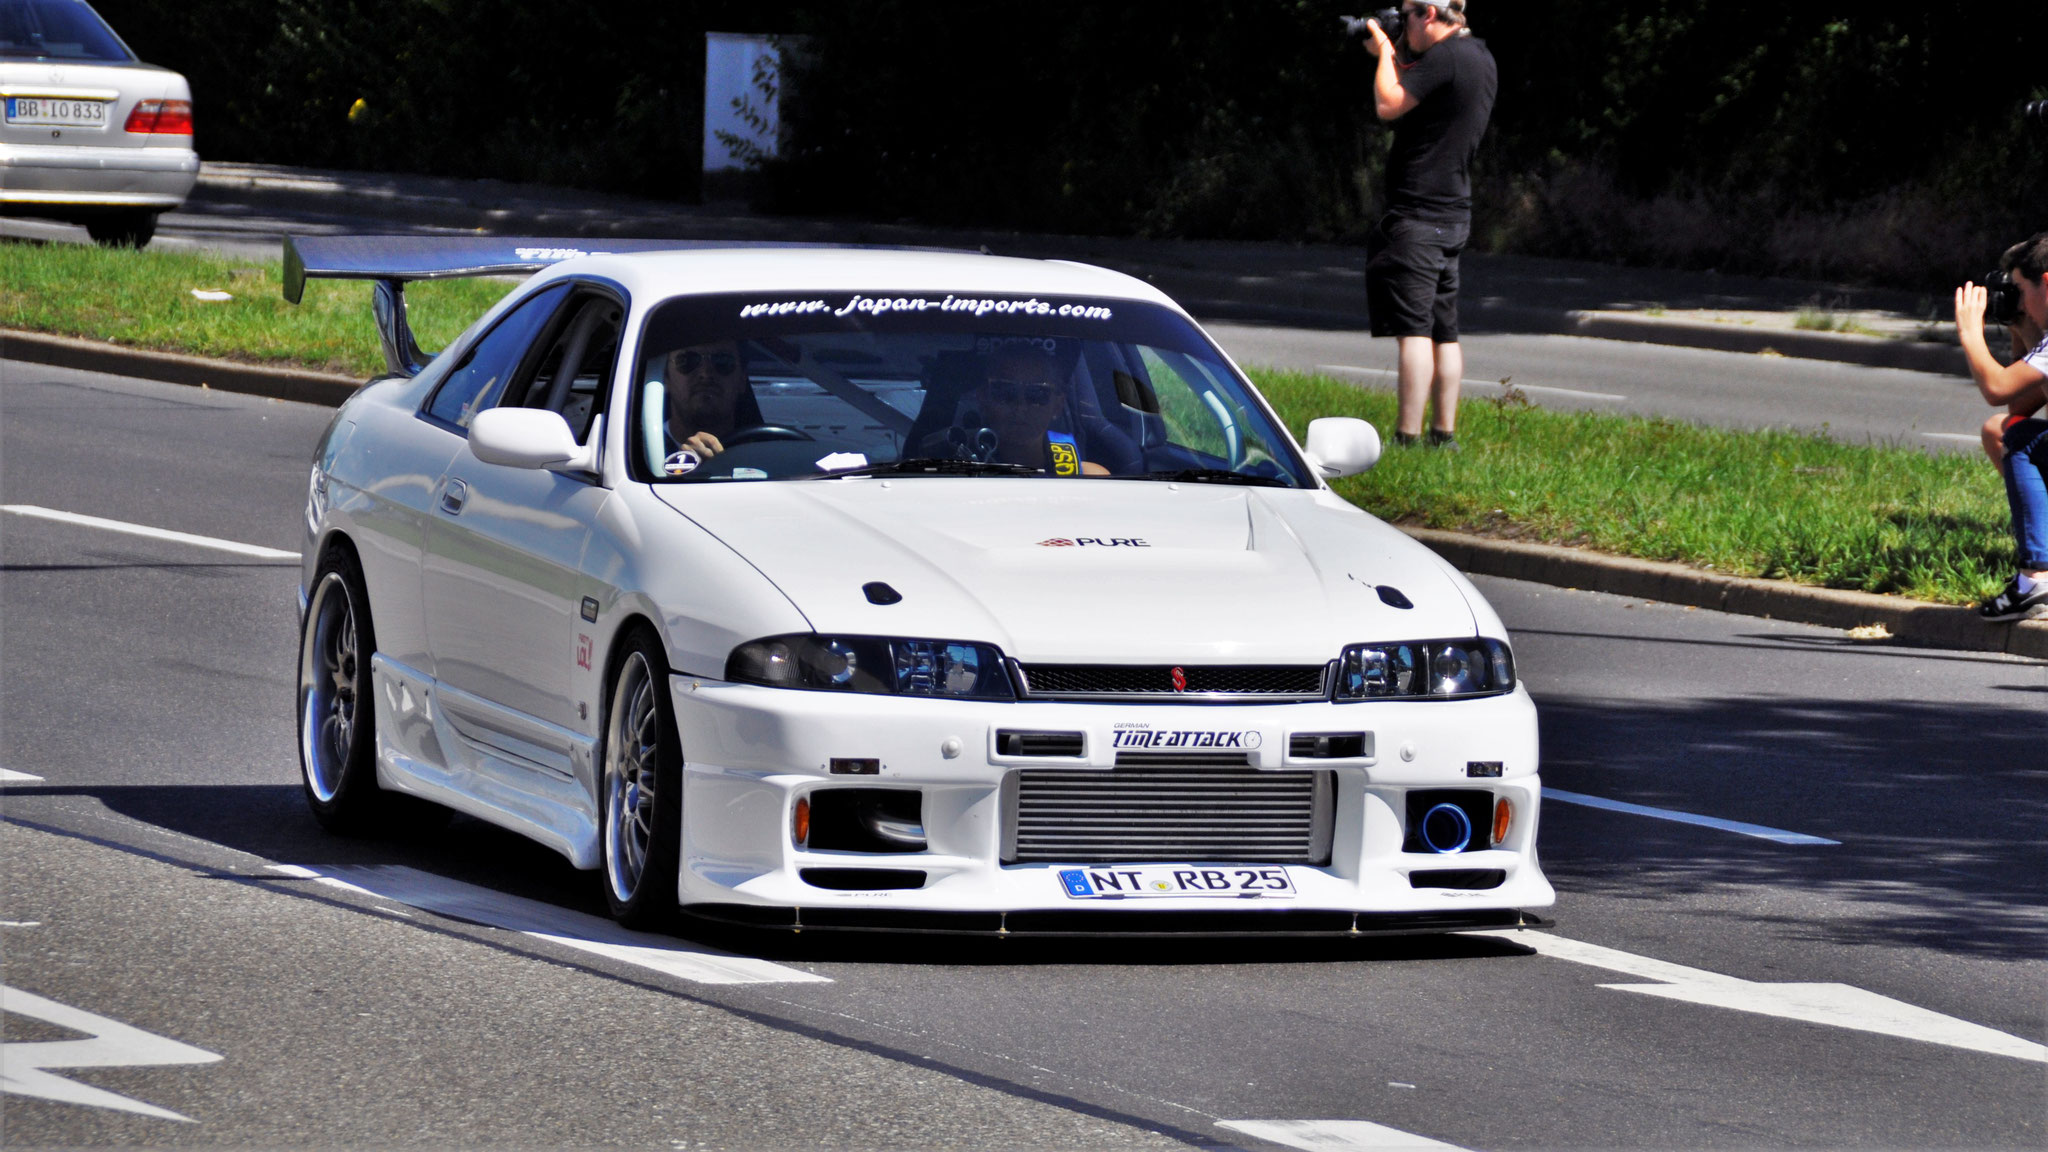 Nissan R33 GT-R - NZ-RB-25